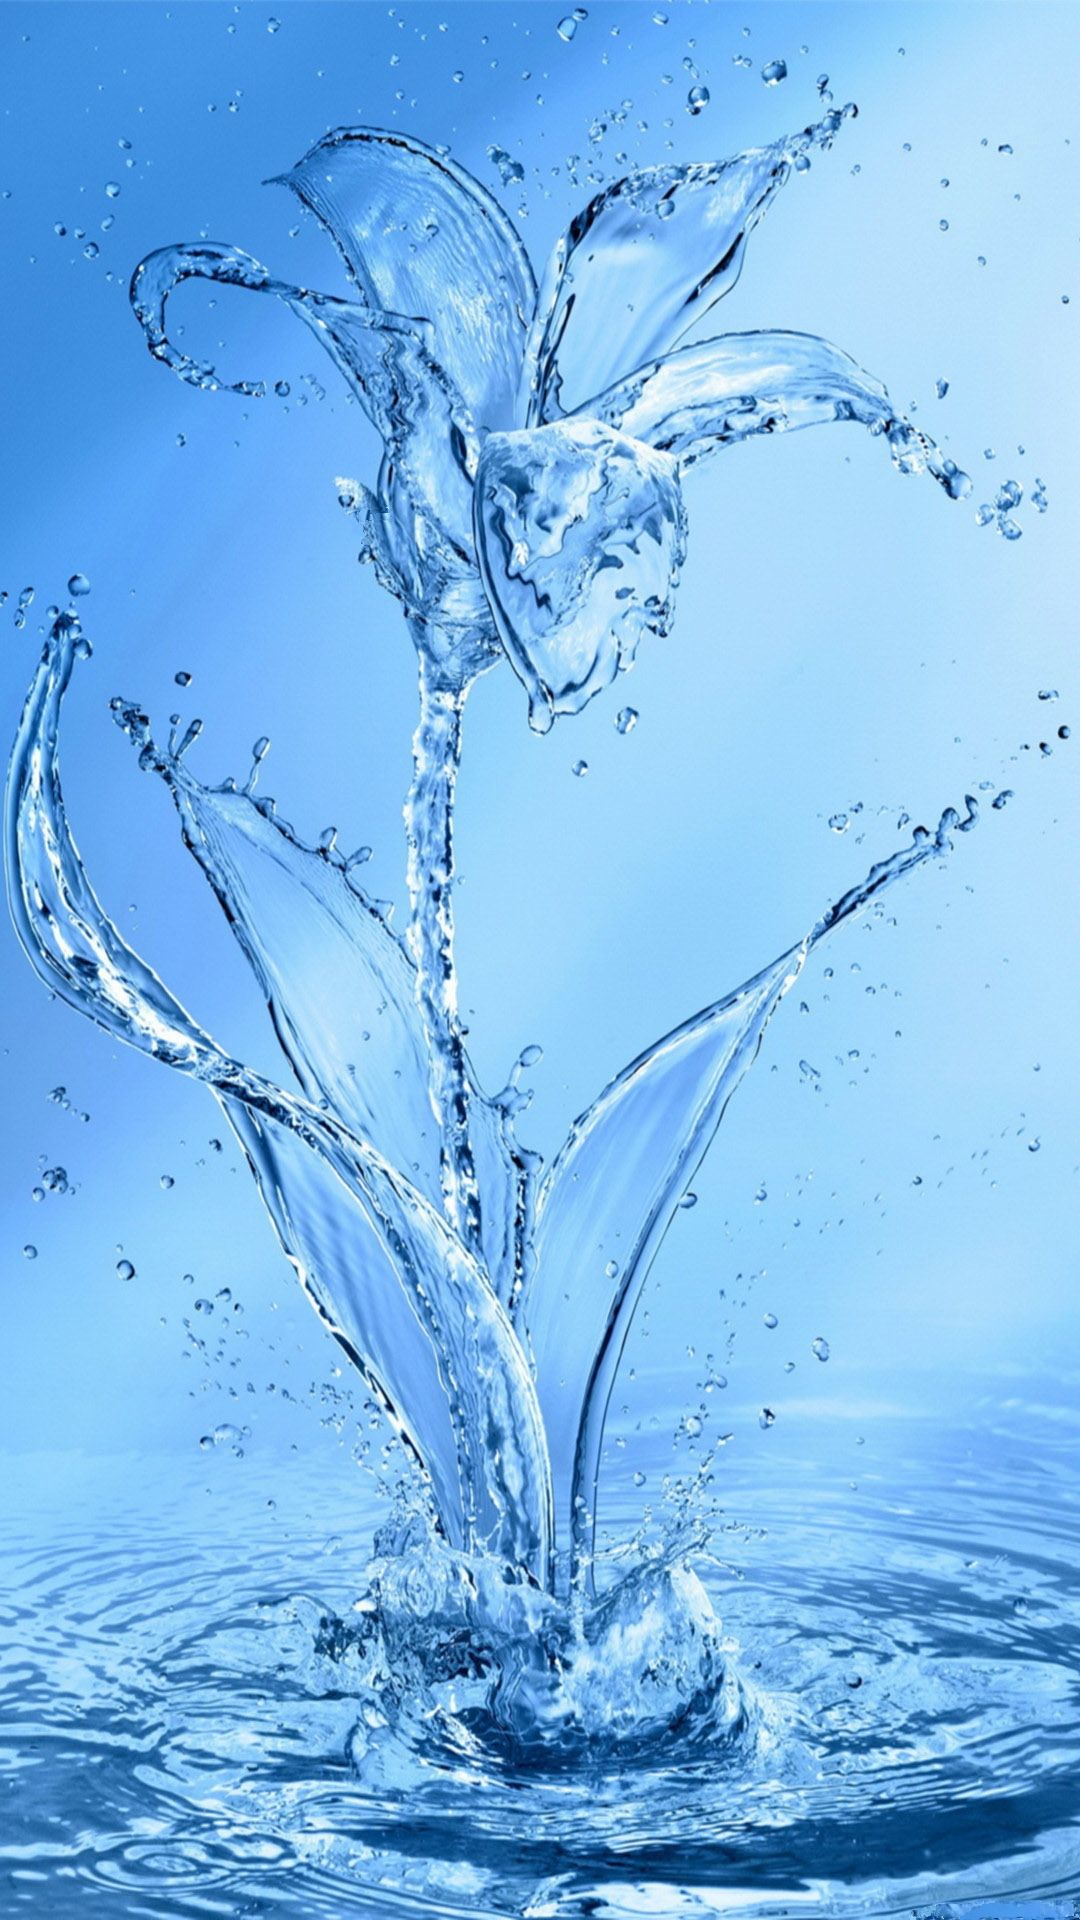 Wallpapers For Samsung Galaxy S4 Thousands Of Hd Wallpapers For Your Samsung Smartphone In 1080x1 Water Art Water Drop Photography Beautiful Nature Wallpaper